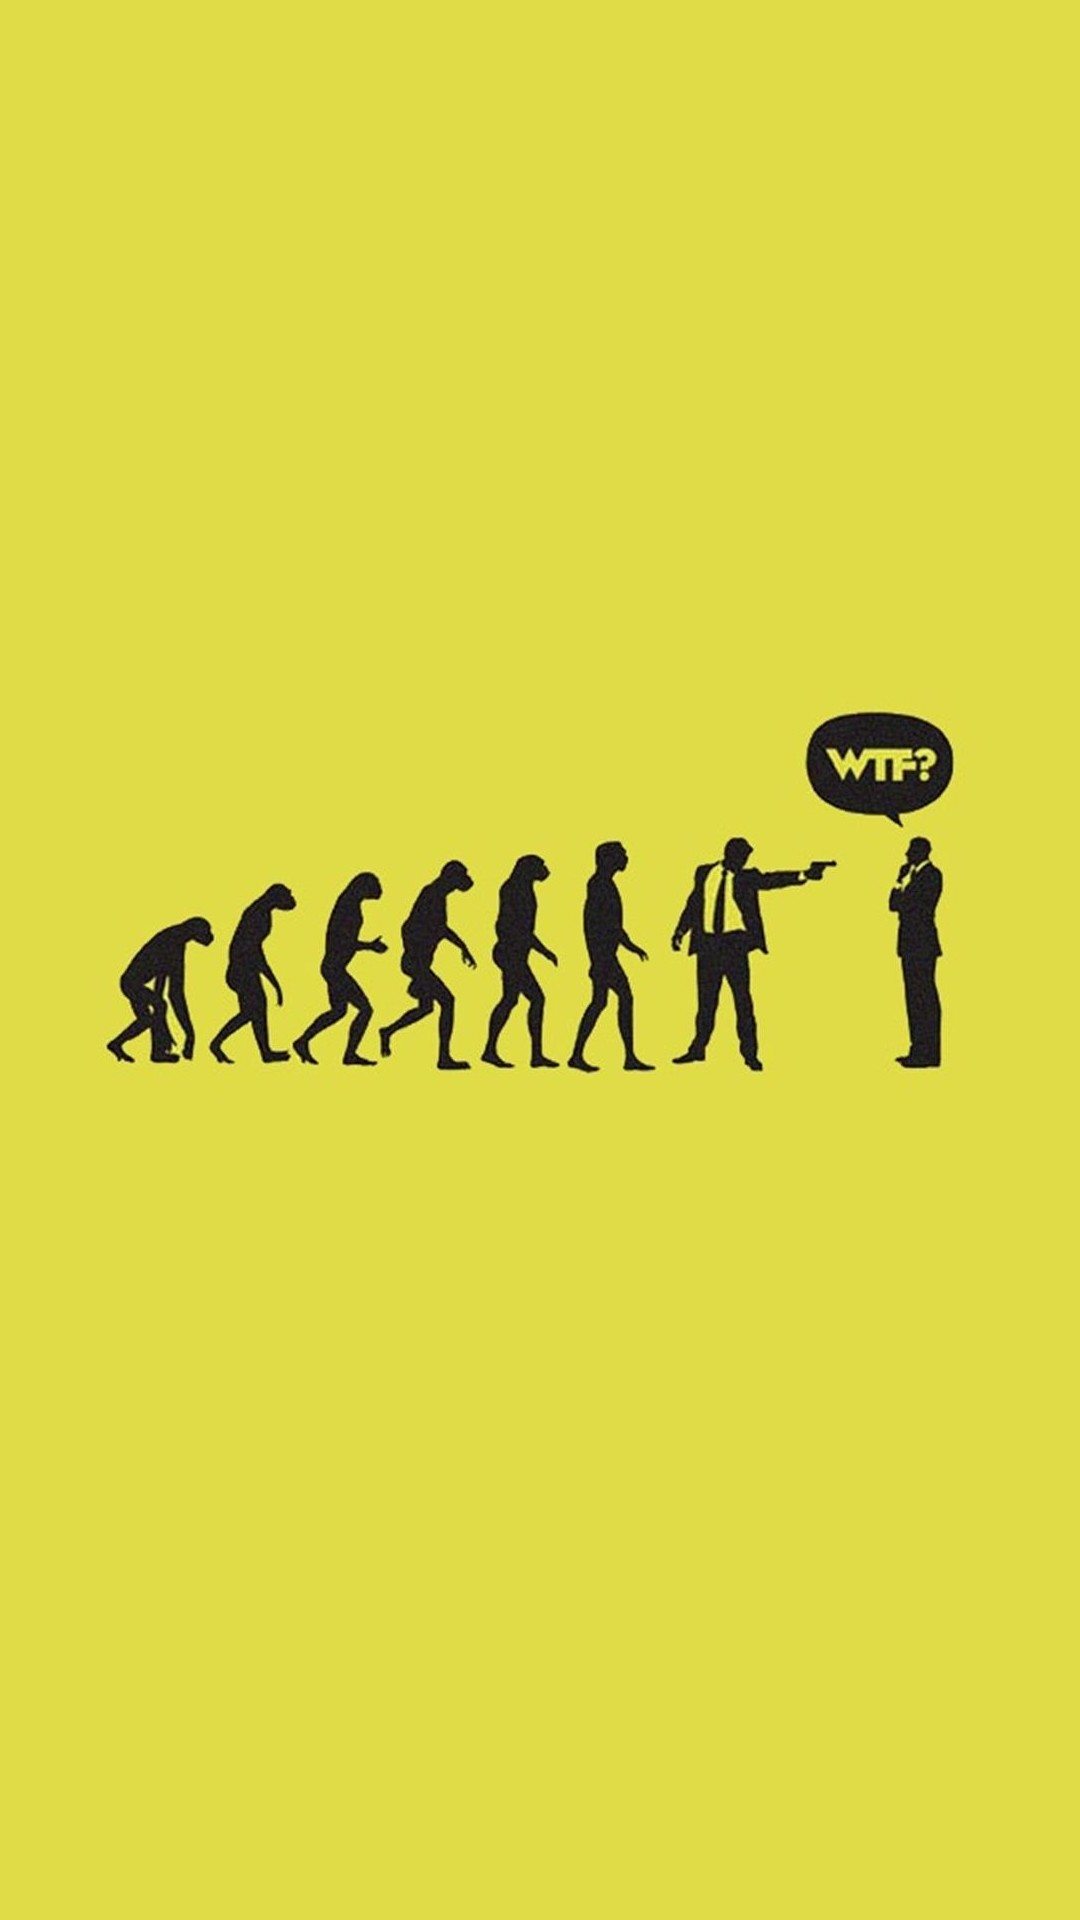 Funny wallpapers phone sf wallpaper funny phone wallpapers 21f4 lyybj voltagebd Choice Image